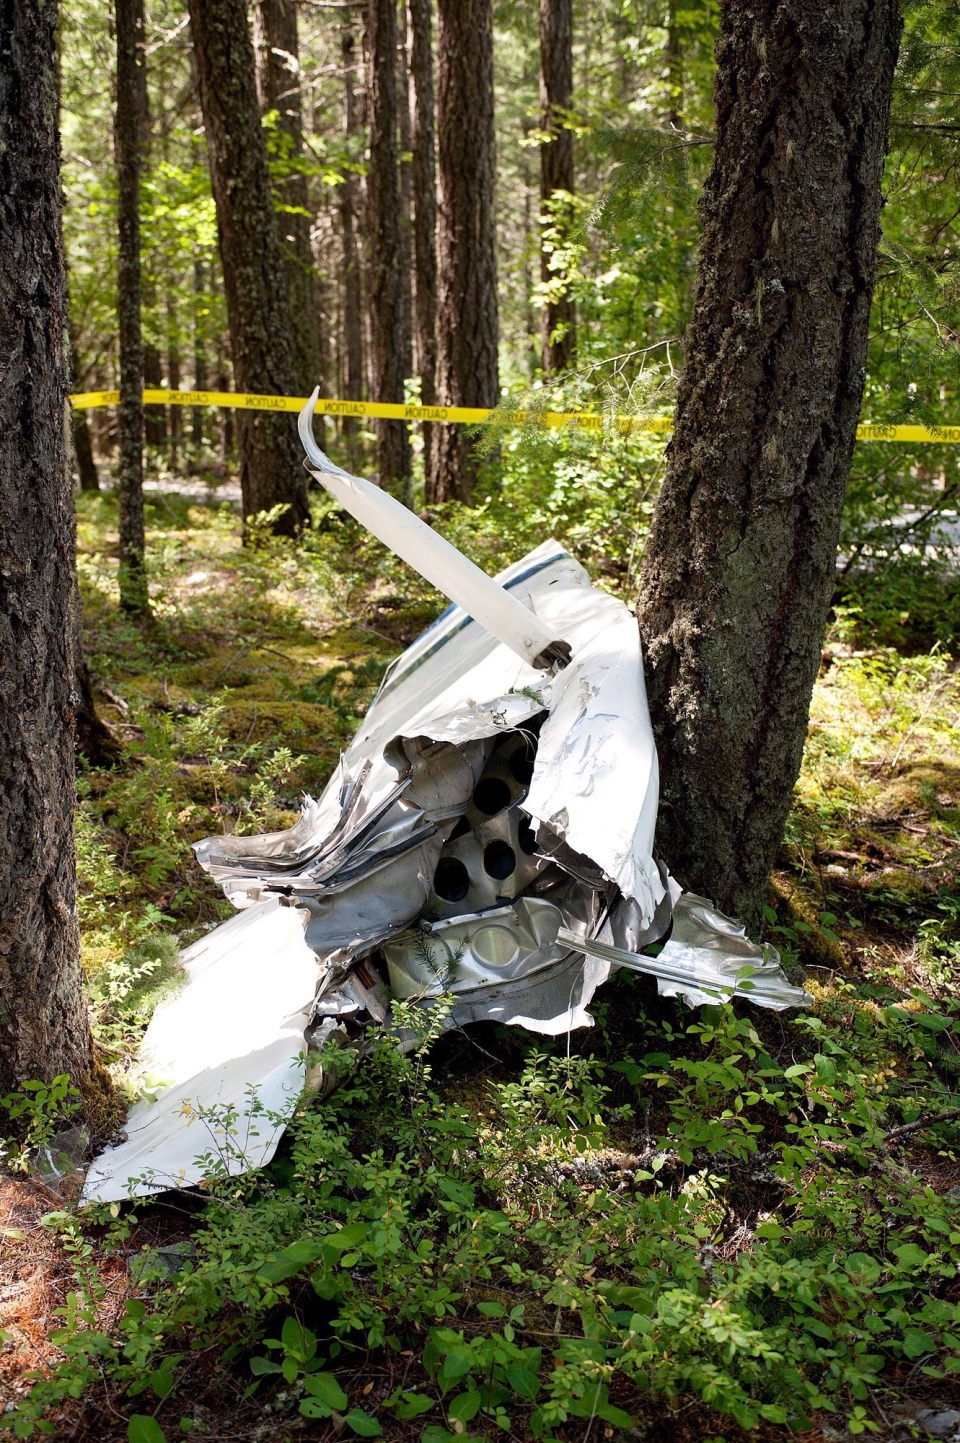 The severed wing of a Cessna 150 lies near the parking lot of Narin Falls Provincial Park, near Pemberton, after a collision between it and a glider on Saturday, June 29, 2013. (David Buzzard / THE CANADIAN PRESS)